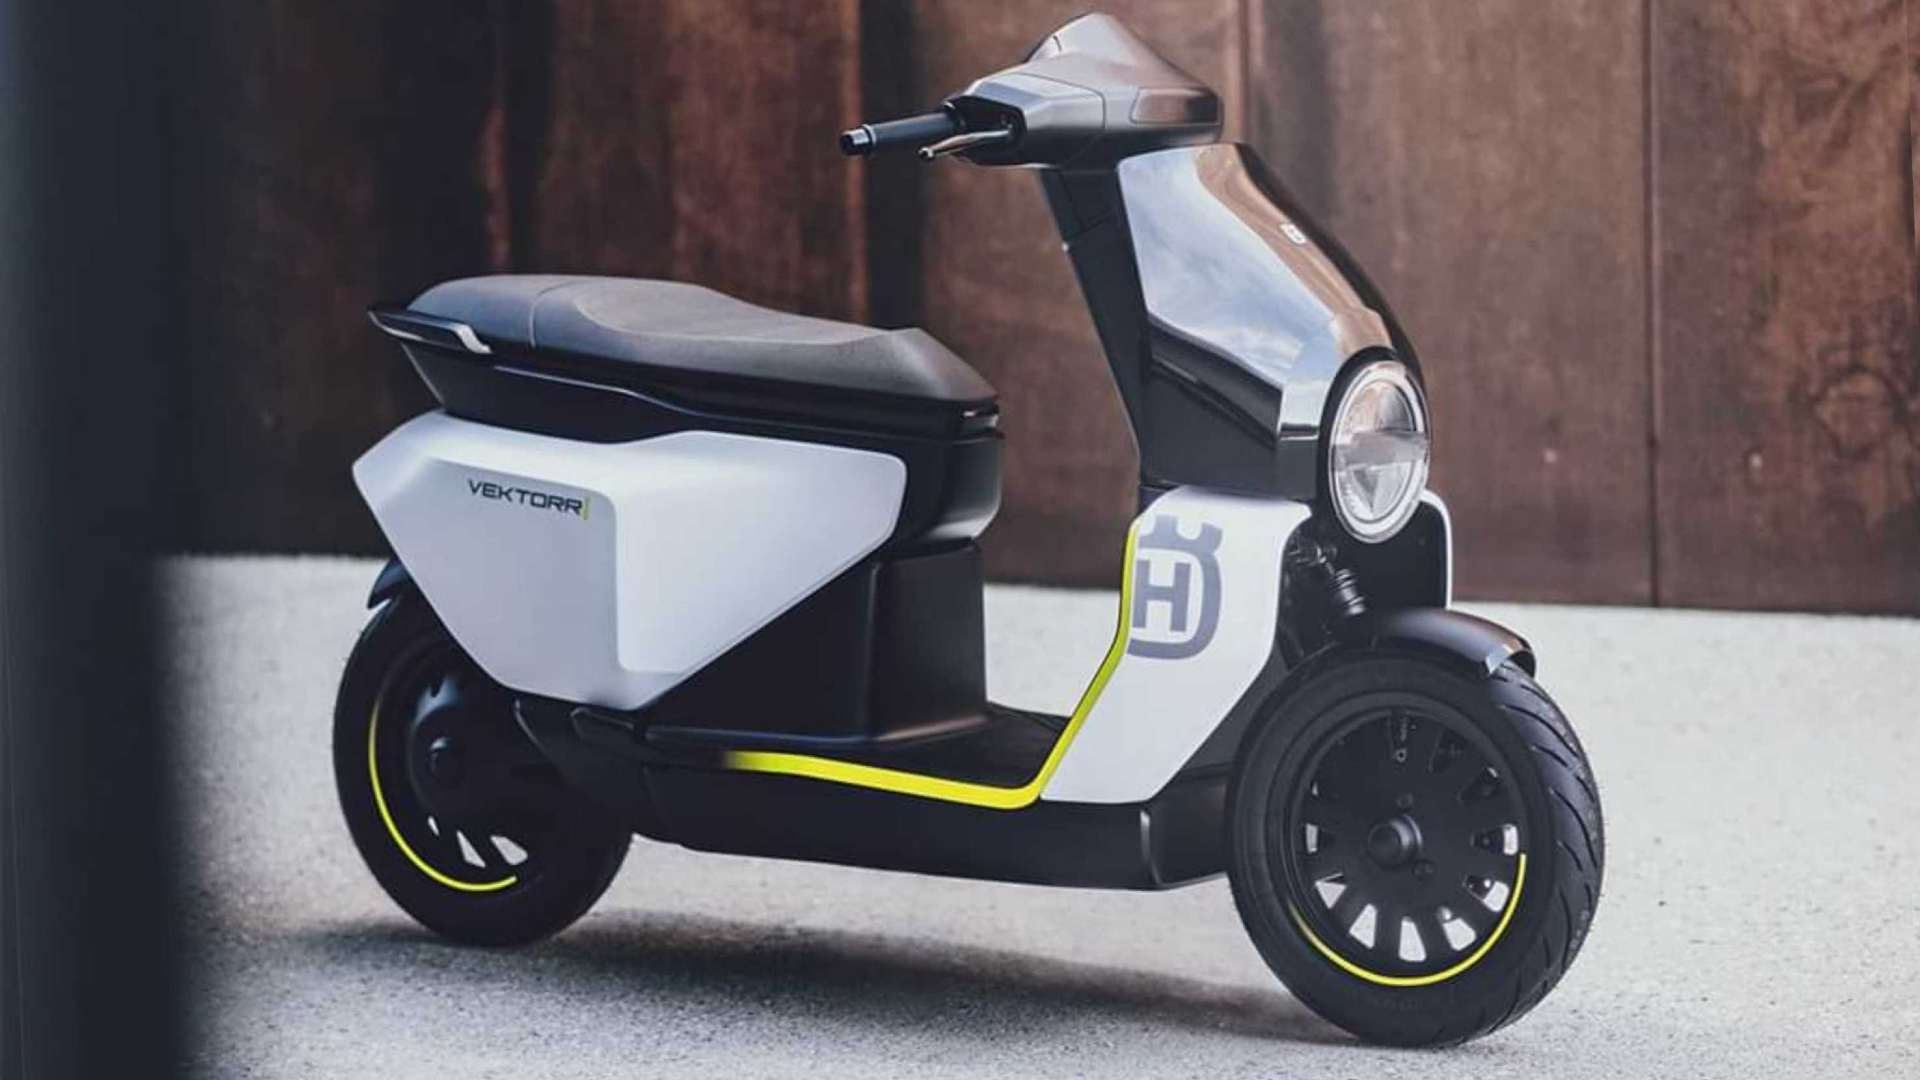 Husqvarna Vektorr e-scooter based on Bajaj Chetak debuts, slated for launch in 2022- Technology News, Gadgetclock